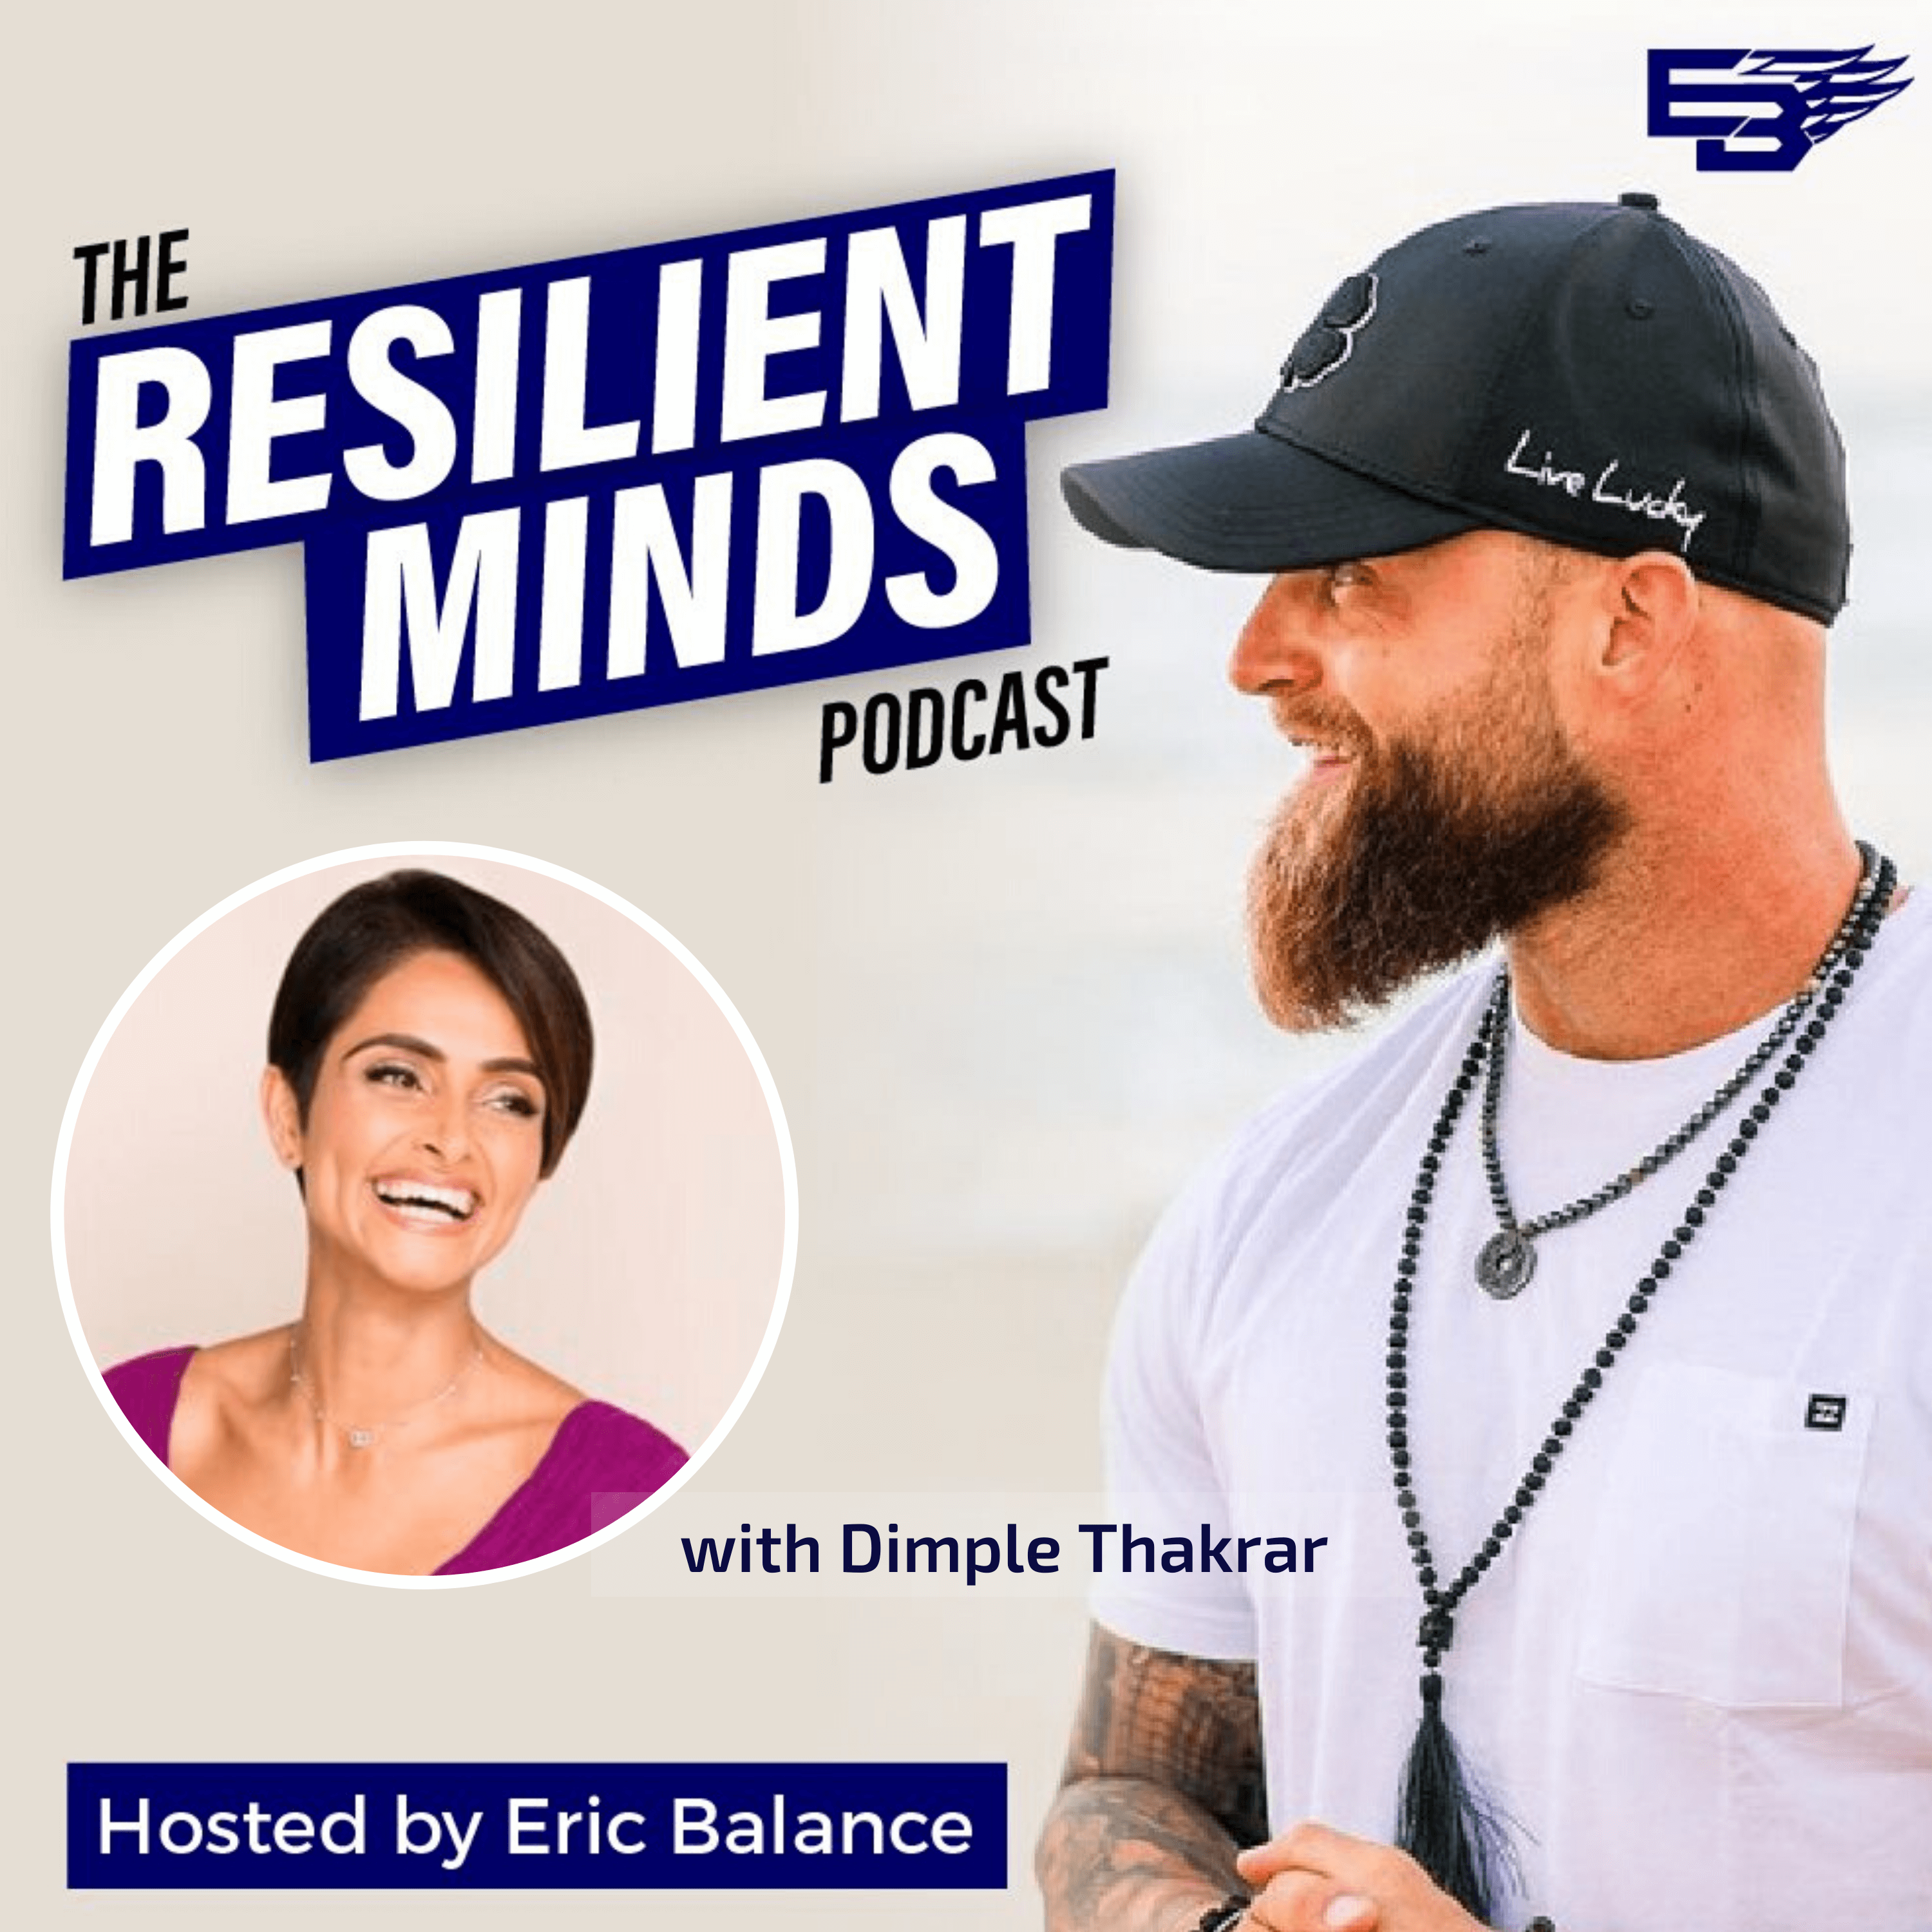 Episode 39 – How to Create Long-Lasting Relationships with Dimple Thakrar.